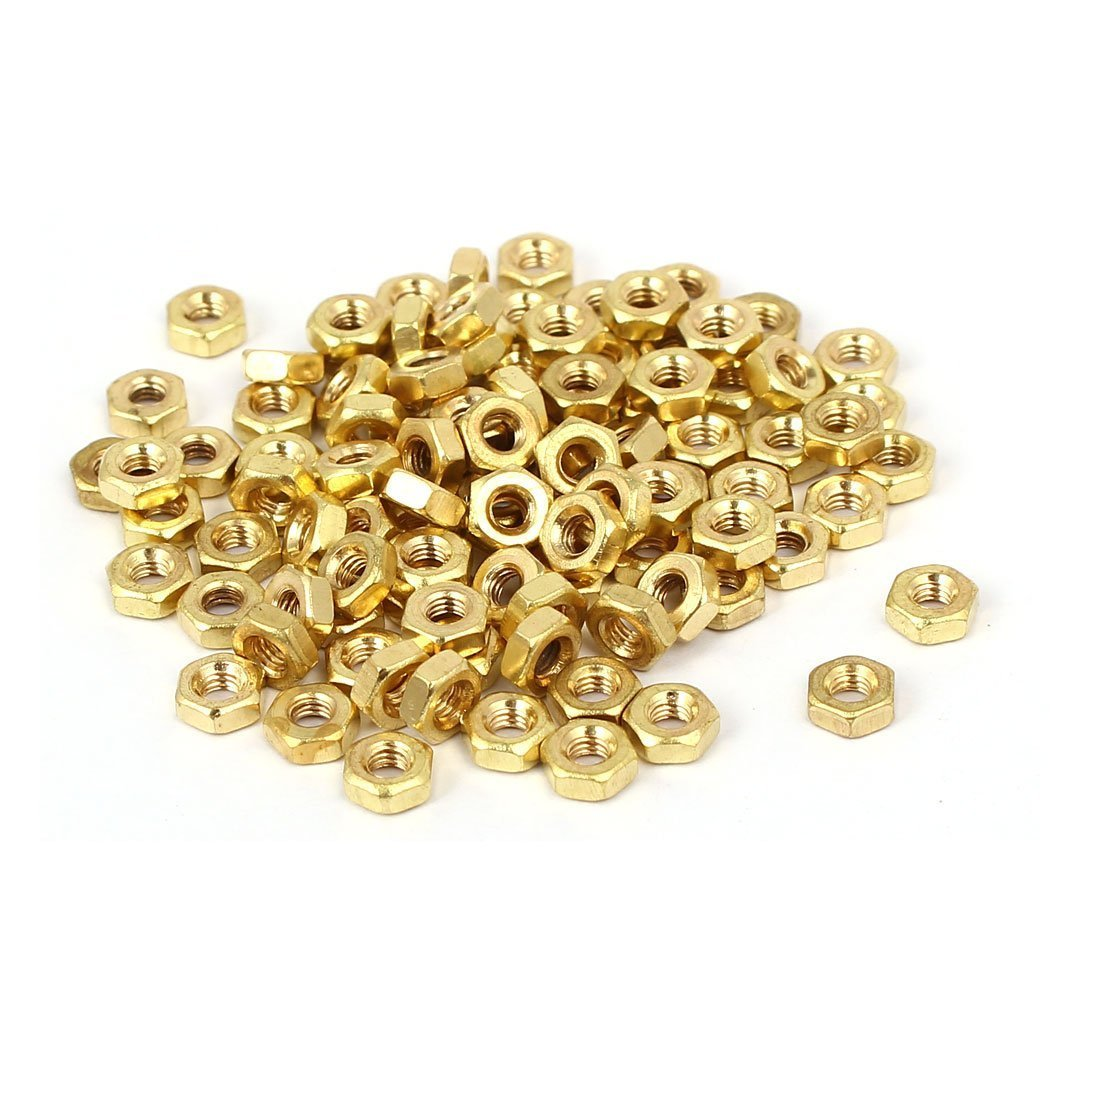 sourcingmap® M2.5 x 2mm Brass Internal Threaded Hexagon Hex Nuts DIN 934 100PCS sourcing map SYNCTEA035821